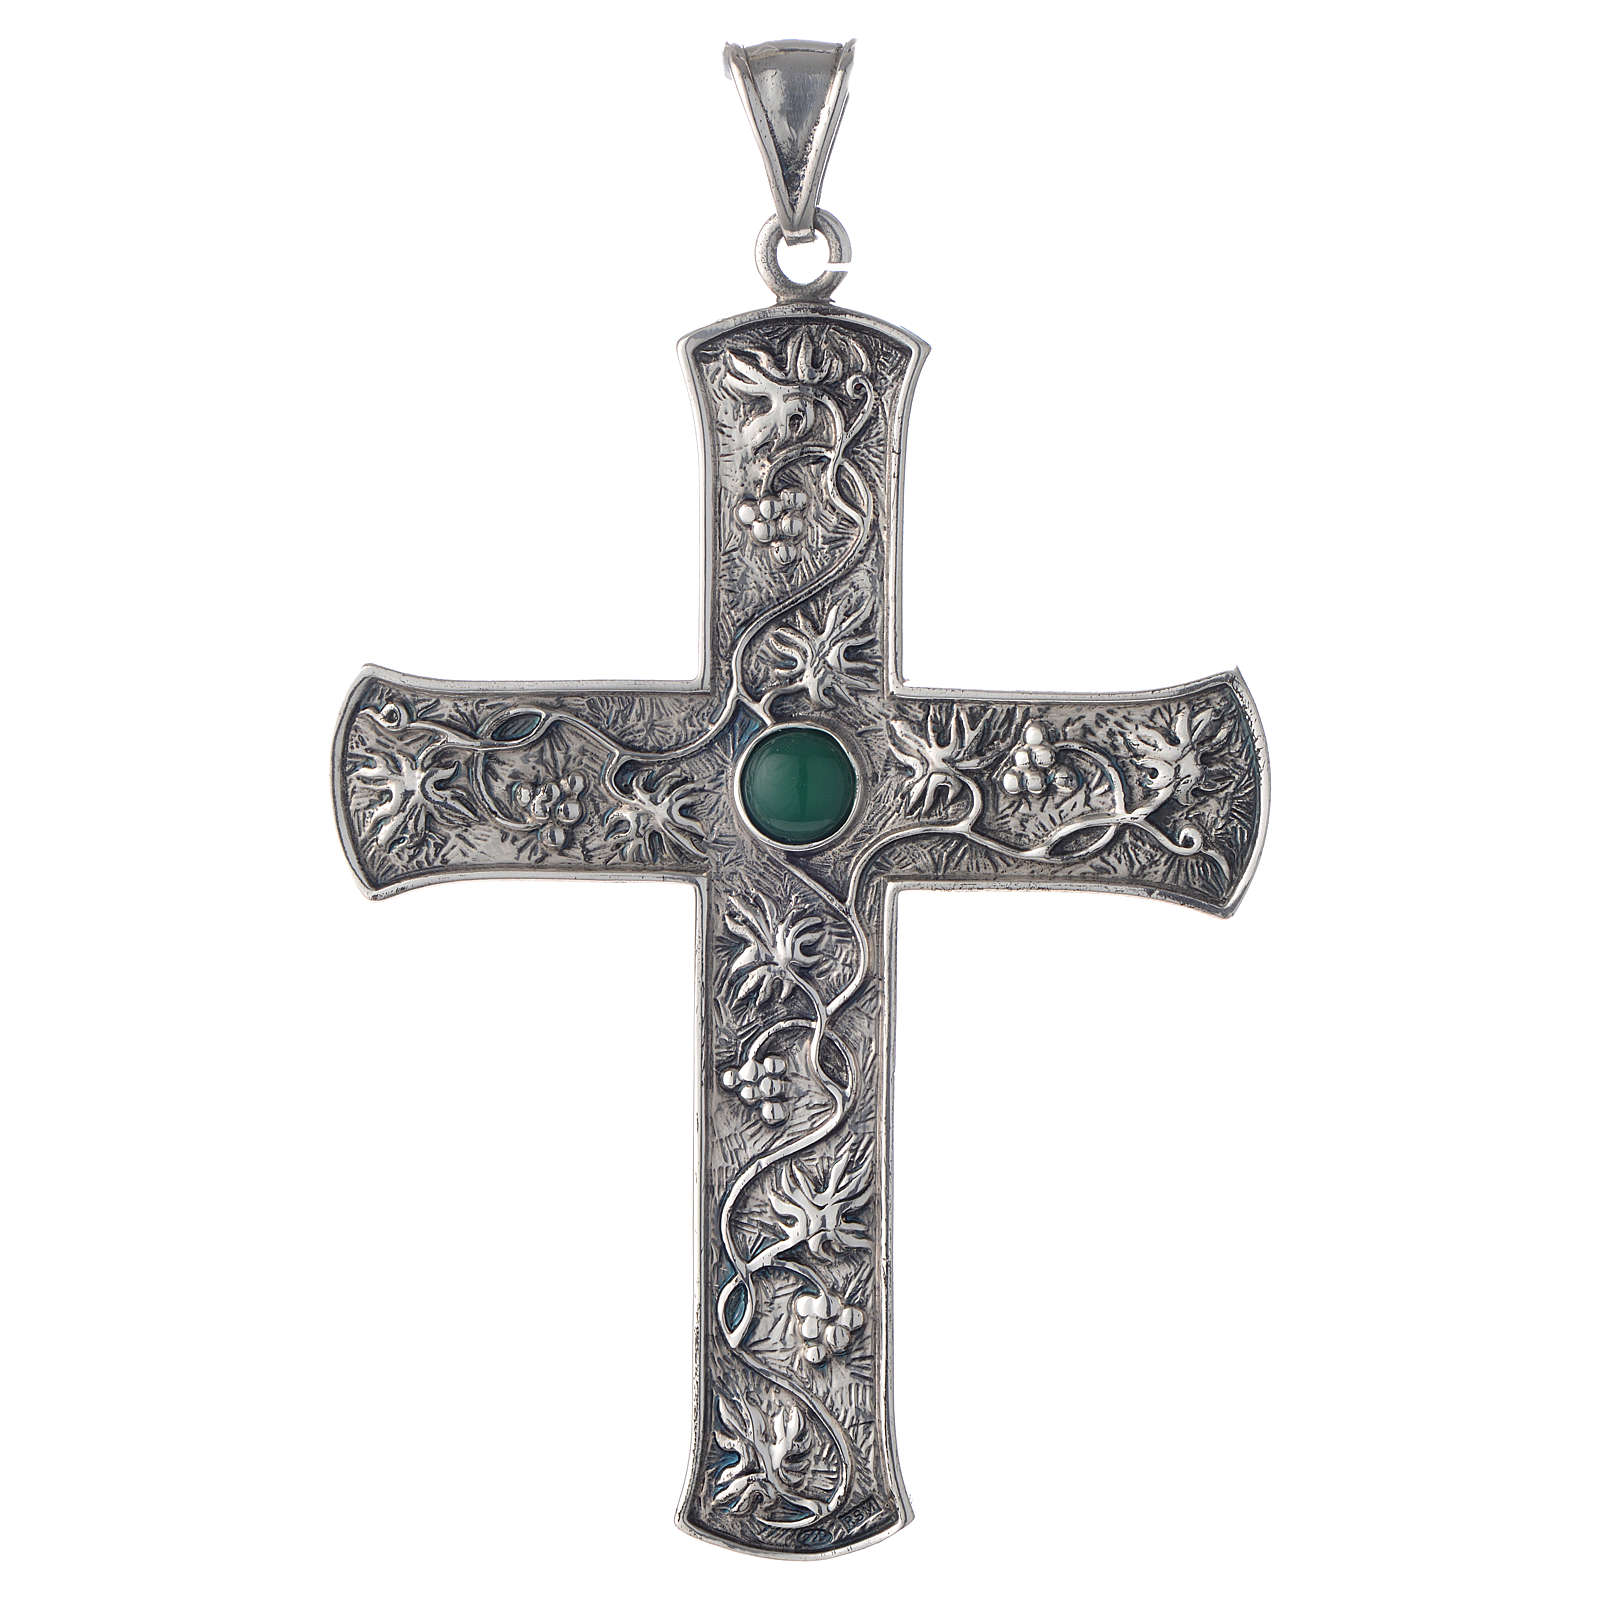 Pectoral cross in silver with green stone, vine branch 3